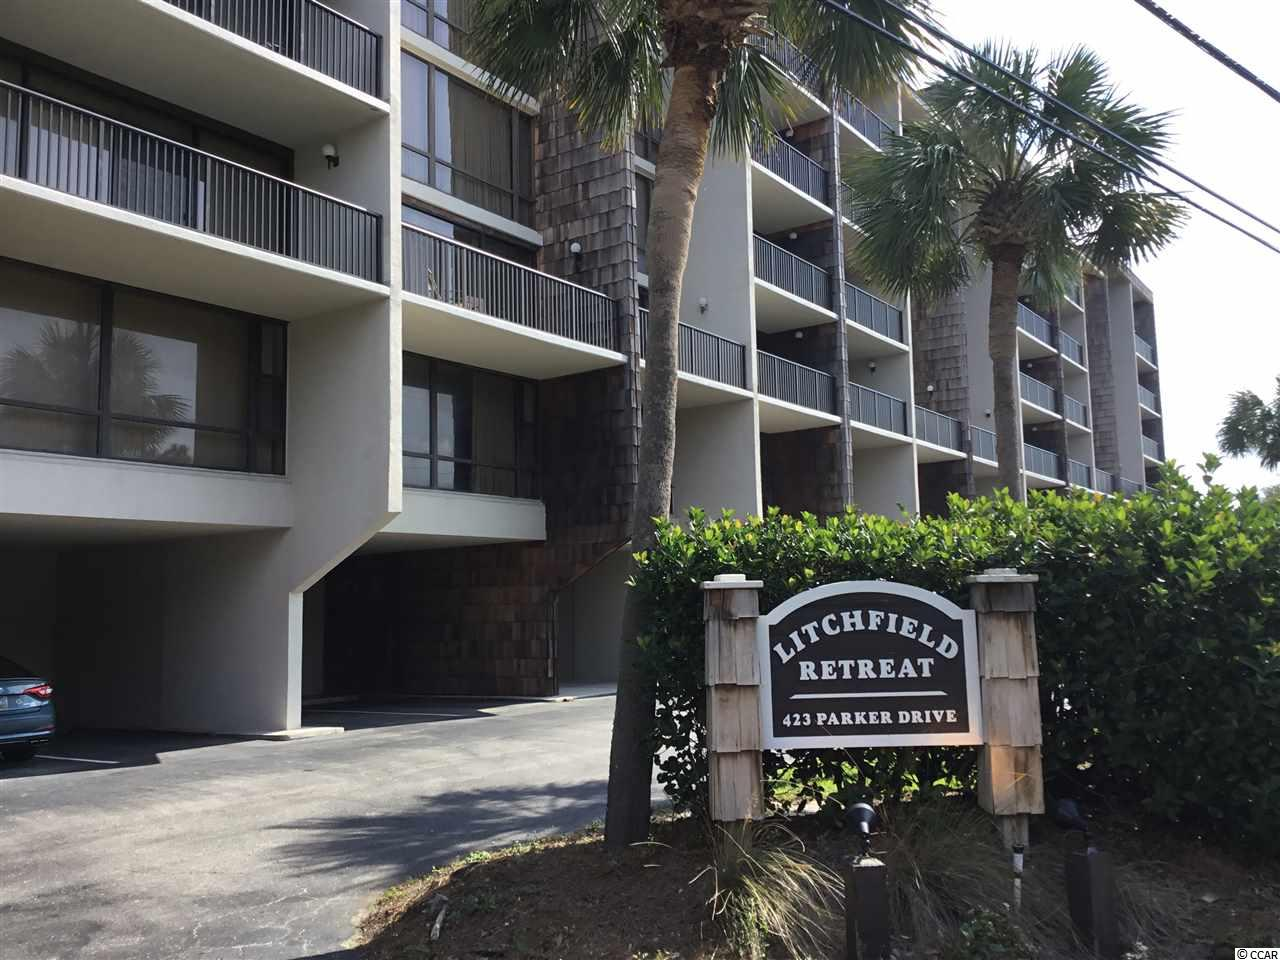 Recently remodeled kitchen and baths.  Beautiful view of the ocean.  One covered parking space, downstairs locker.  Master bedroom has a king, blackouts on window wall.  Good rental history. Great neighborhood atmosphere.  One level.